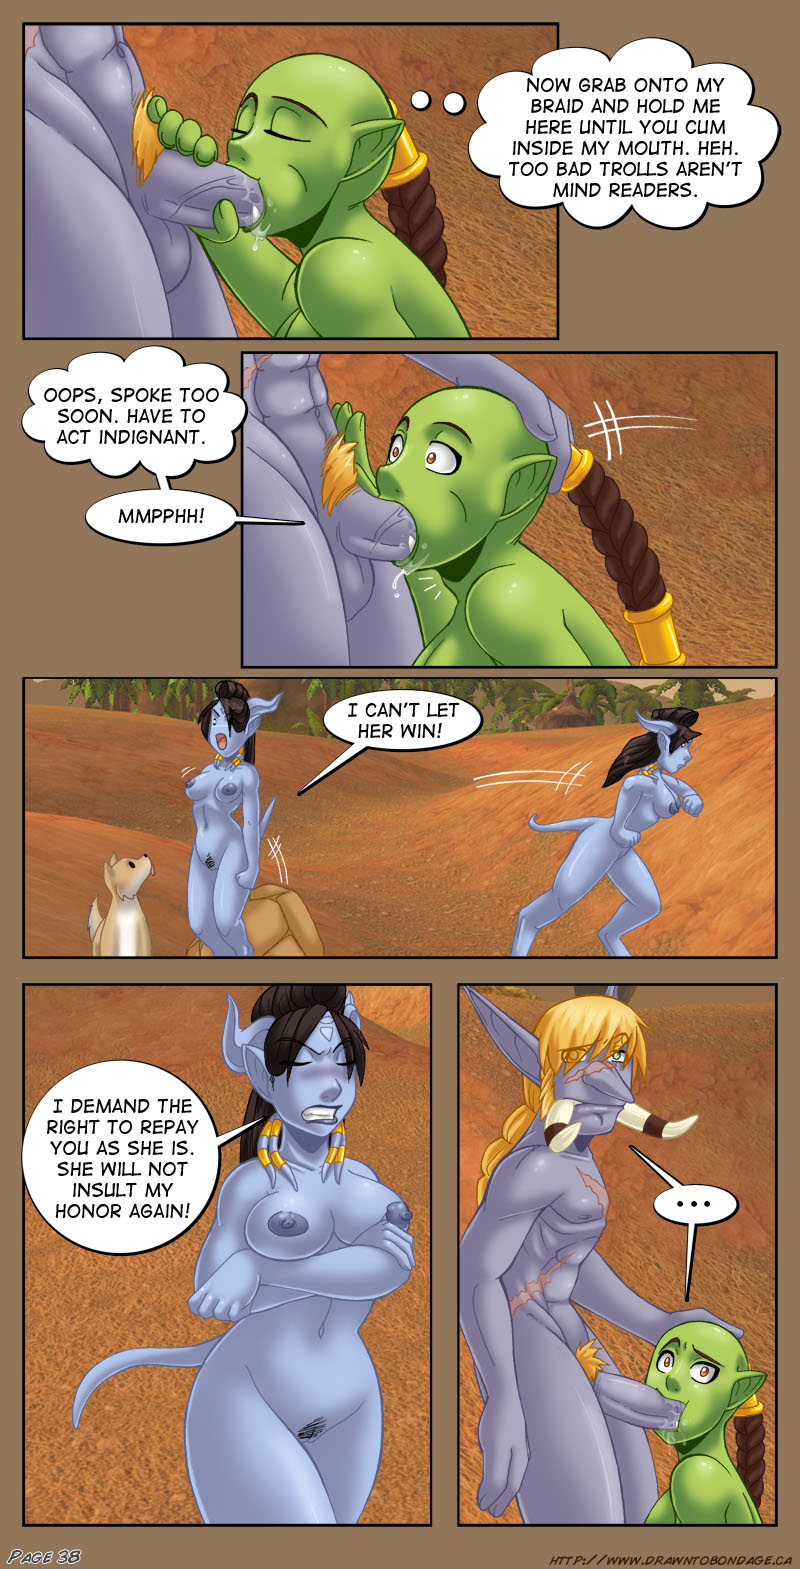 World of warcraft strange acquaintances comic hentai